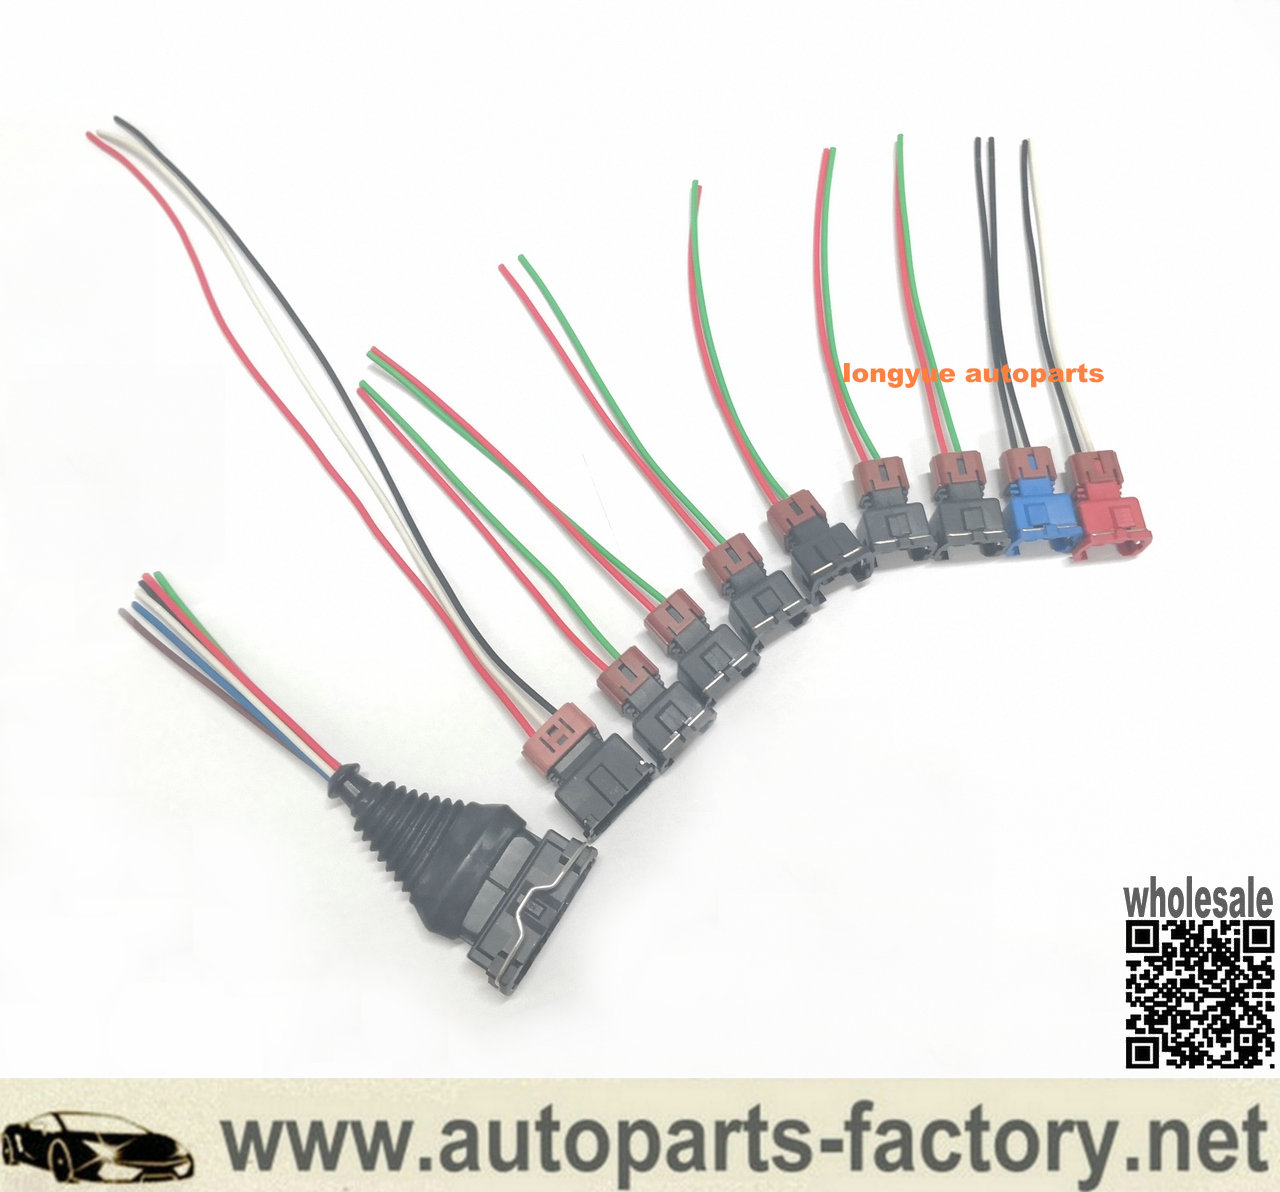 Longyue Fuel Injector MAF TPS Wiring Harness Connector Kit For Nissan 300zx Z31 84-87